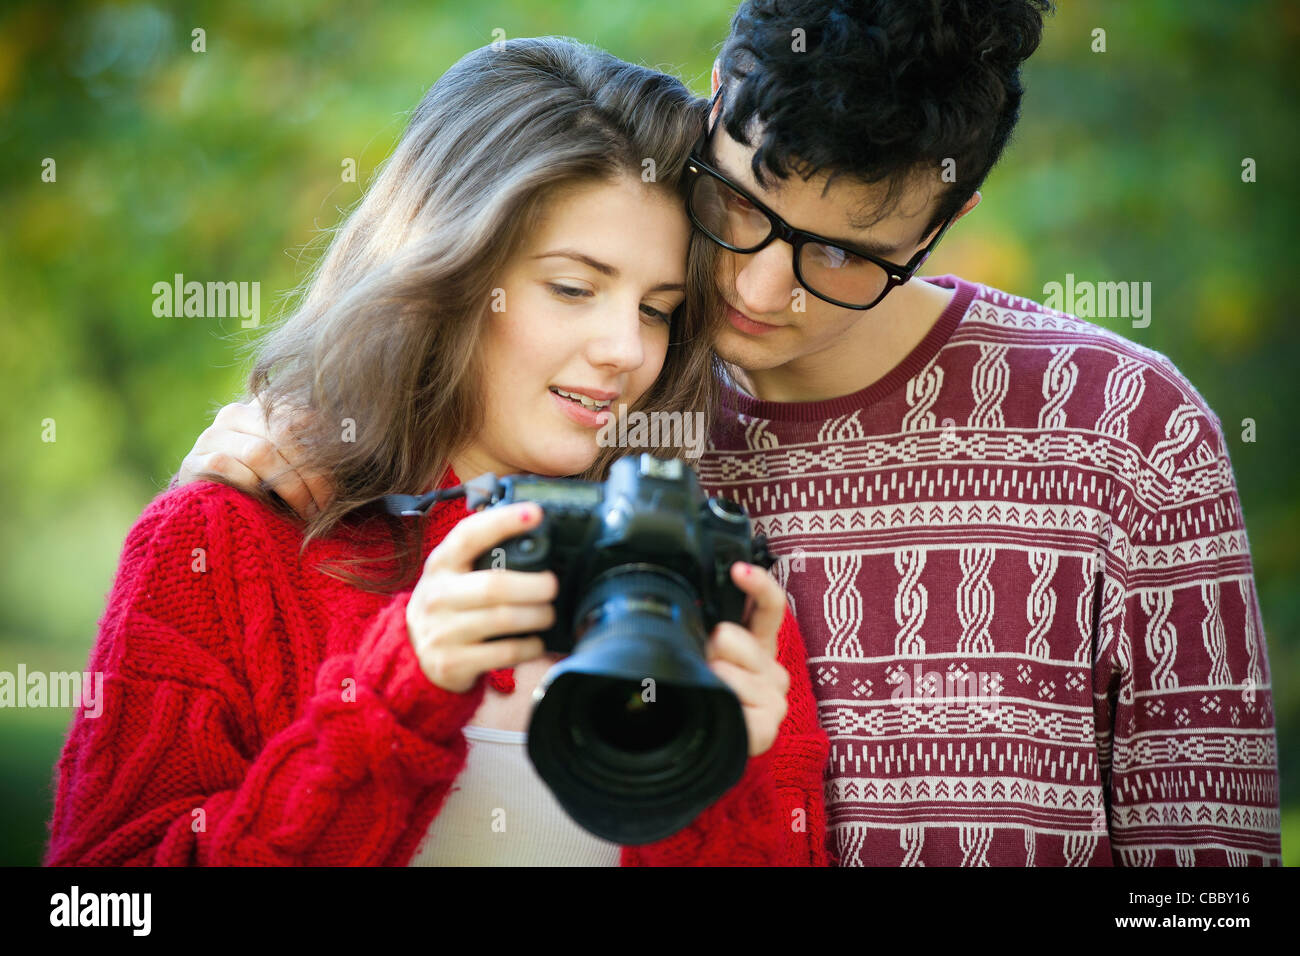 Teenage girl using camera with boyfriend Banque D'Images